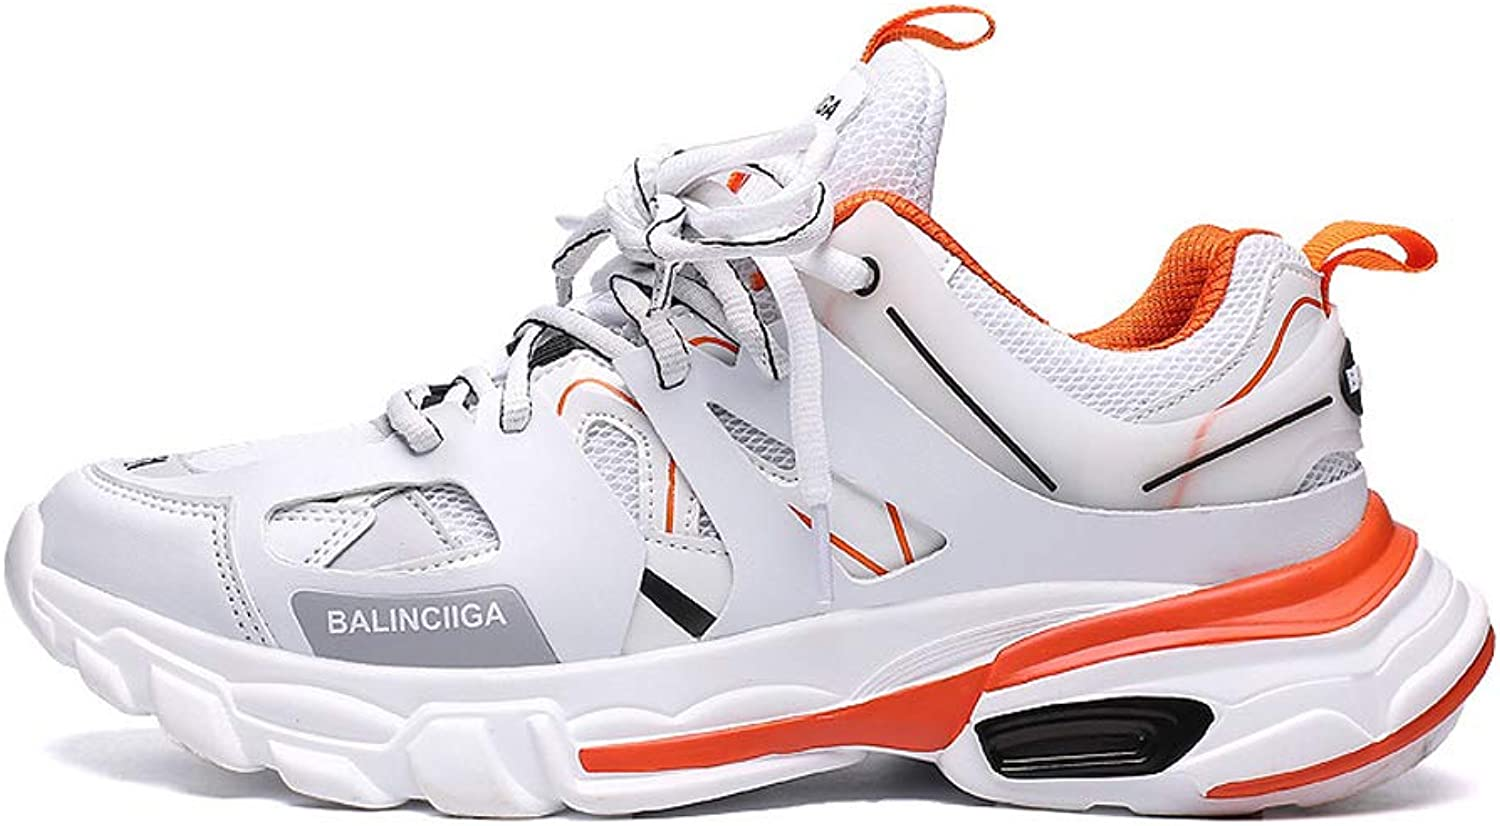 FFSH Sneakers Hiking Outdoor Sports shoes Travel Slip wear-Resistant Breathable Running Walking shoes-White-44